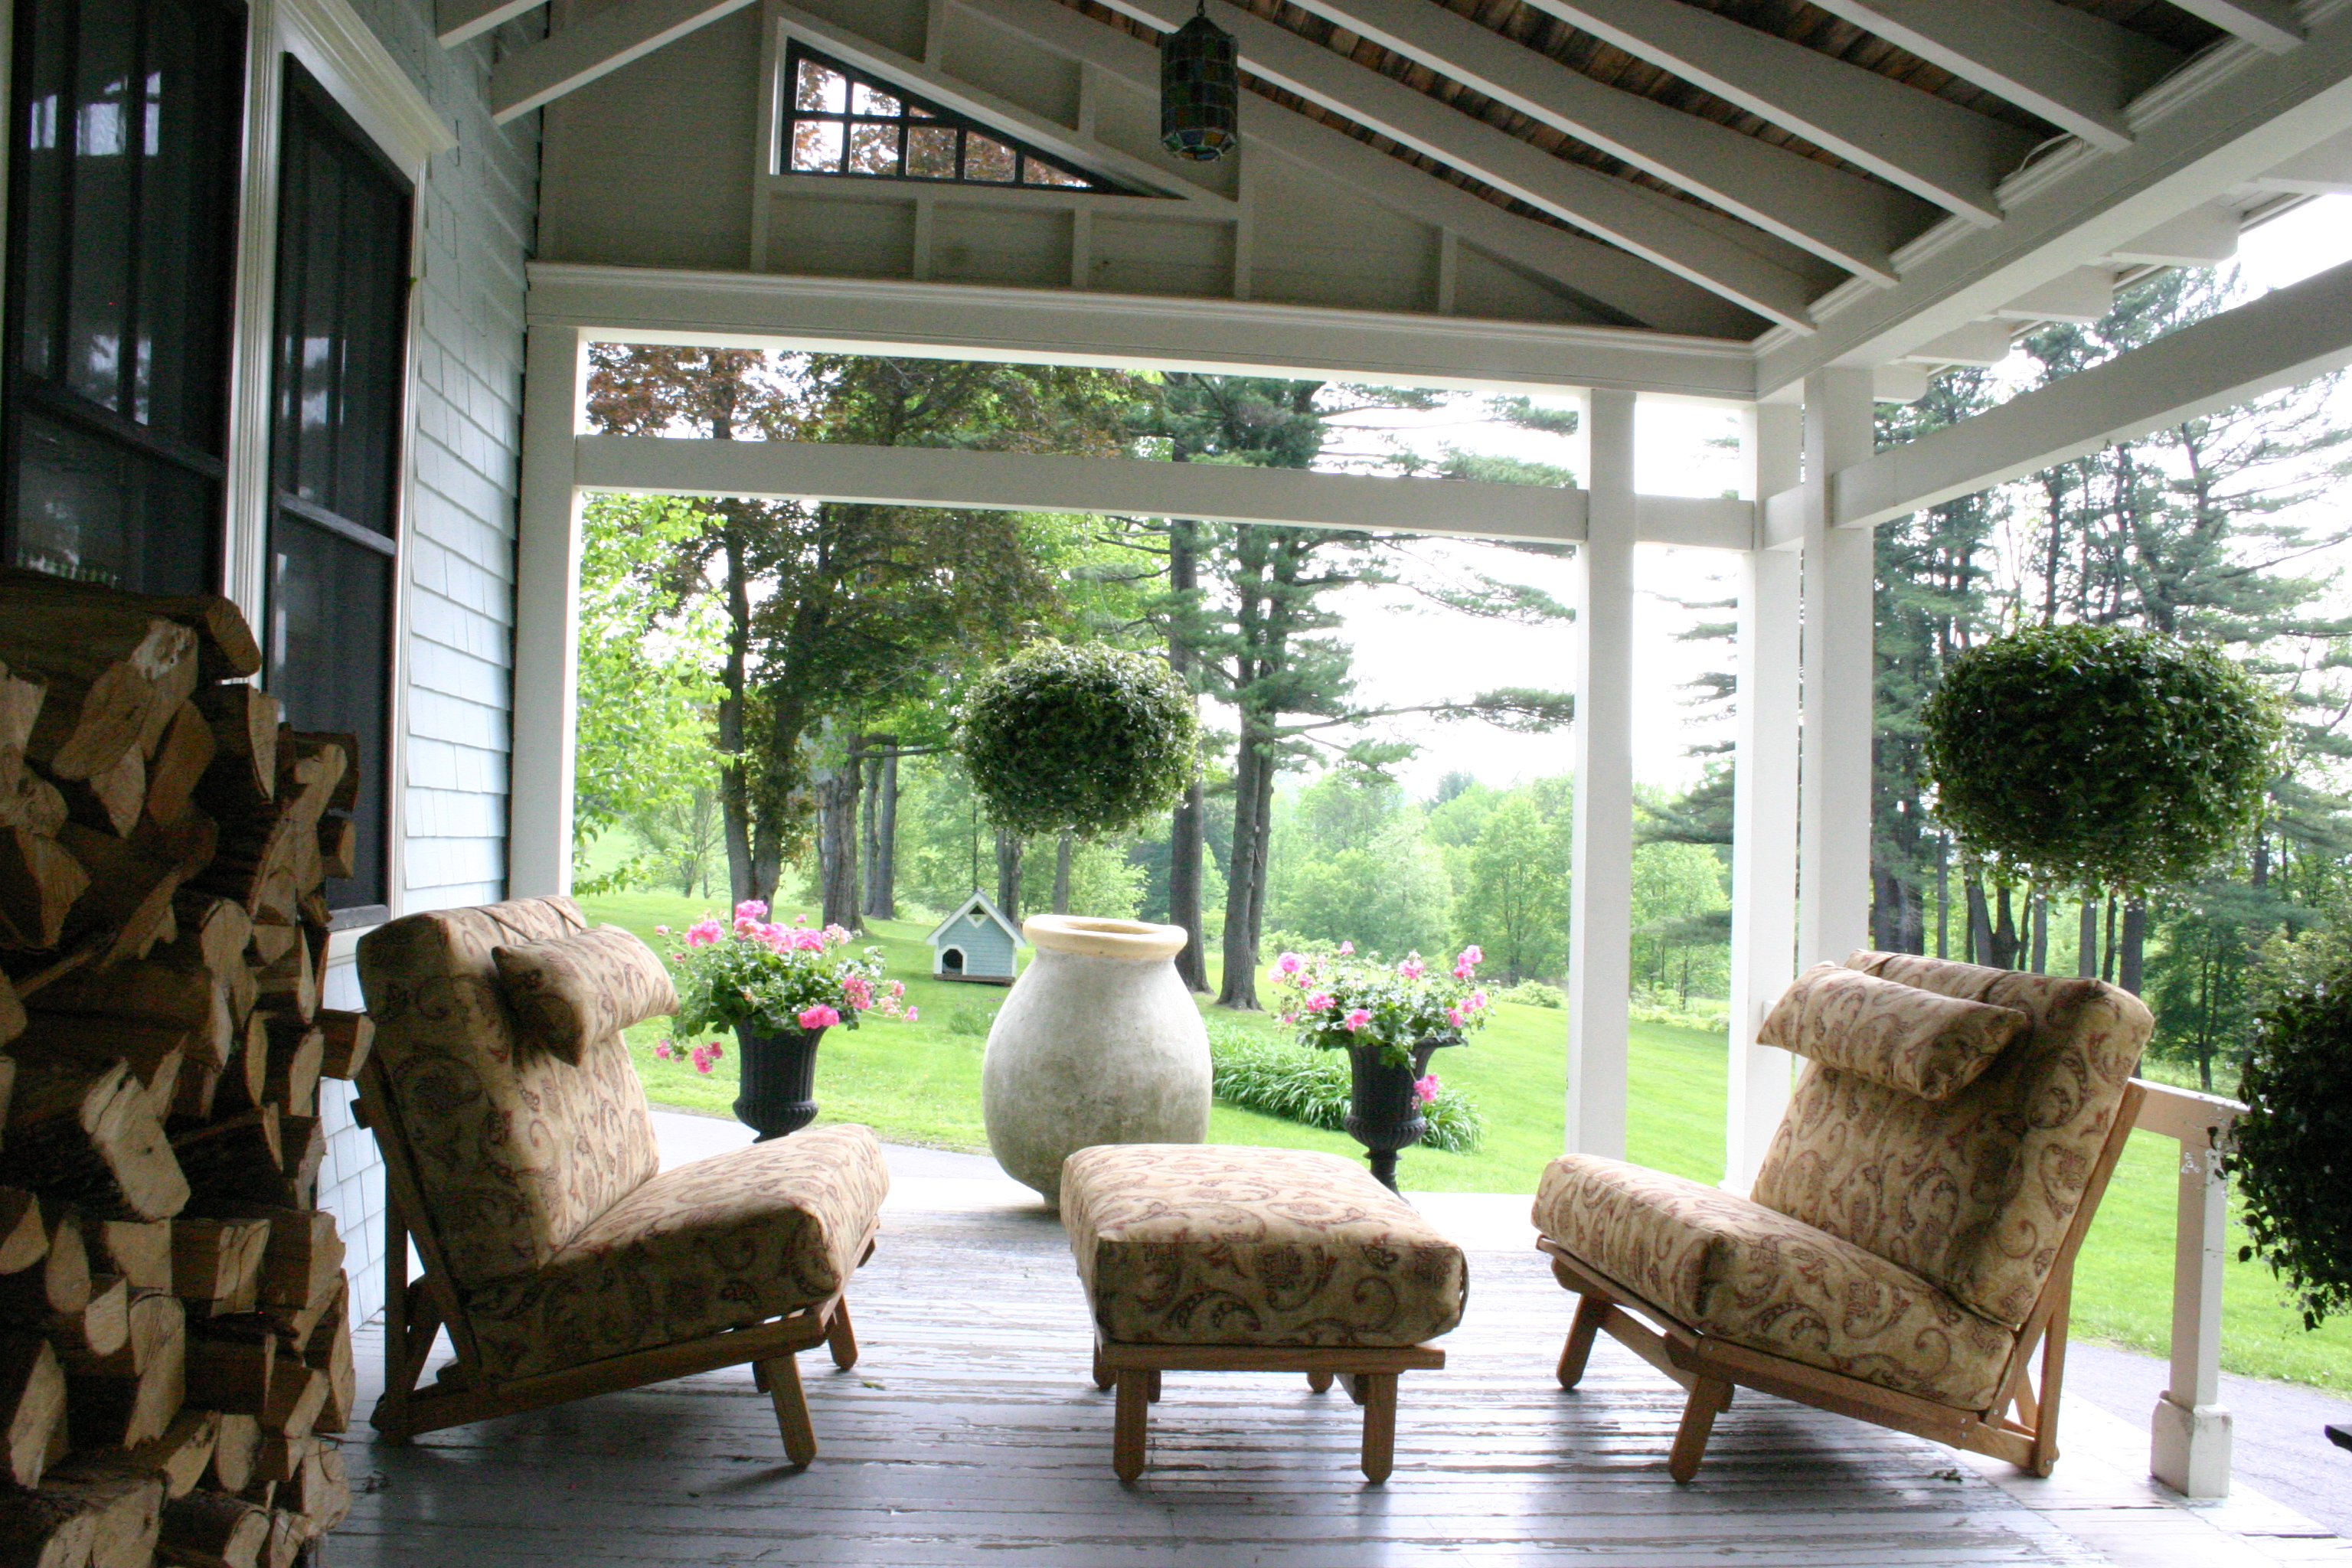 Twin Chairs with Ottomans on Porch